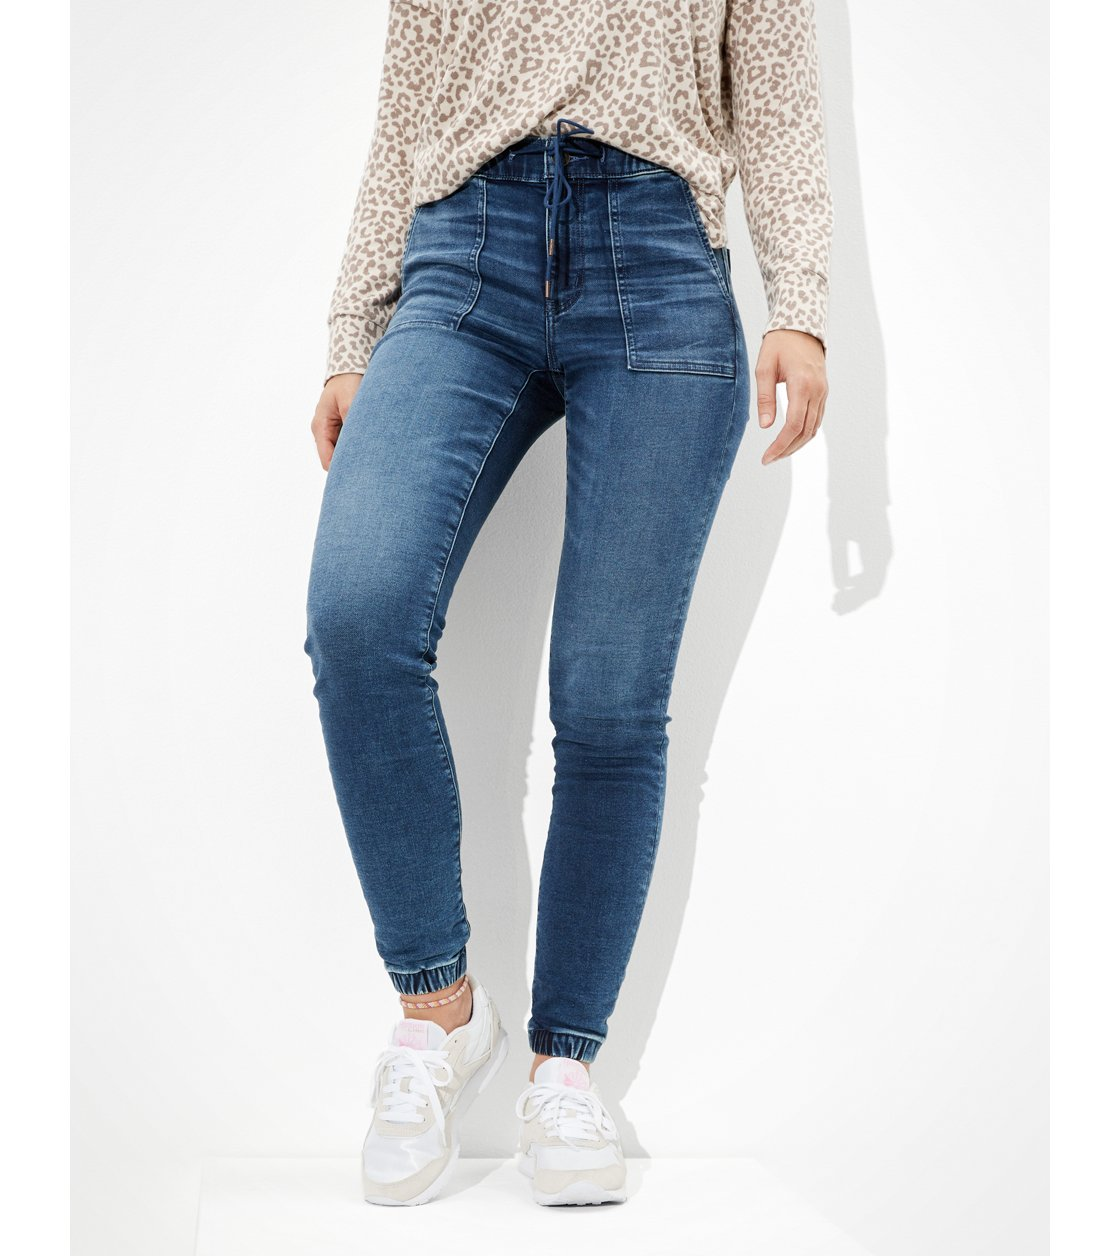 American Eagle AE Cozy Ne(x)t Level High-Waisted Jegging Jogger